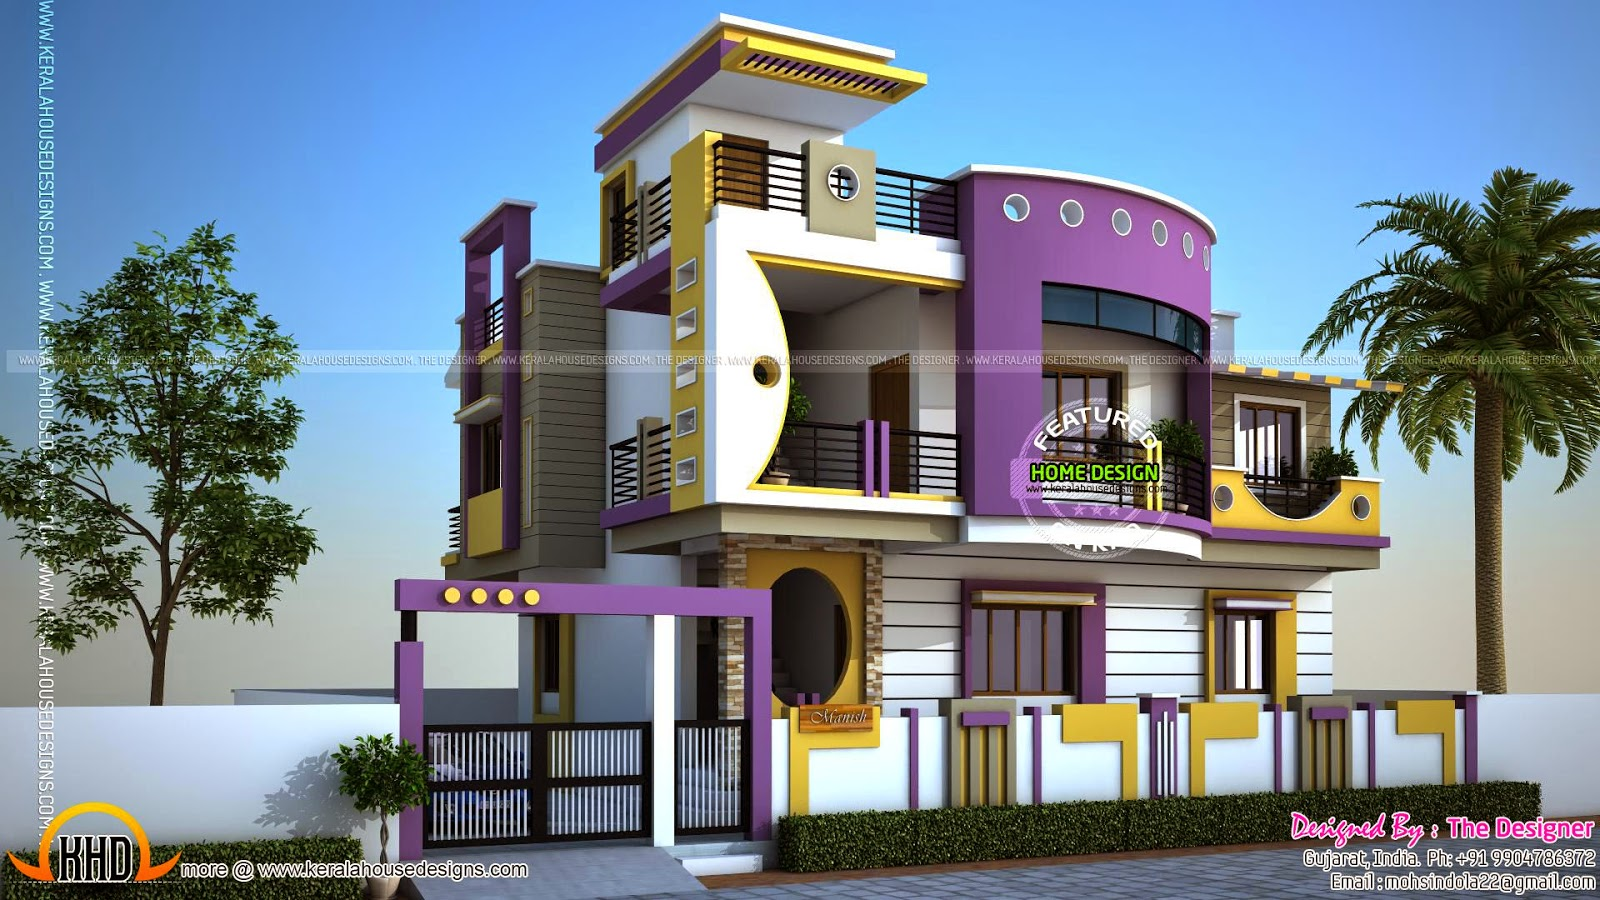 House exterior designs in contemporary style kerala home for Modern house designs exterior